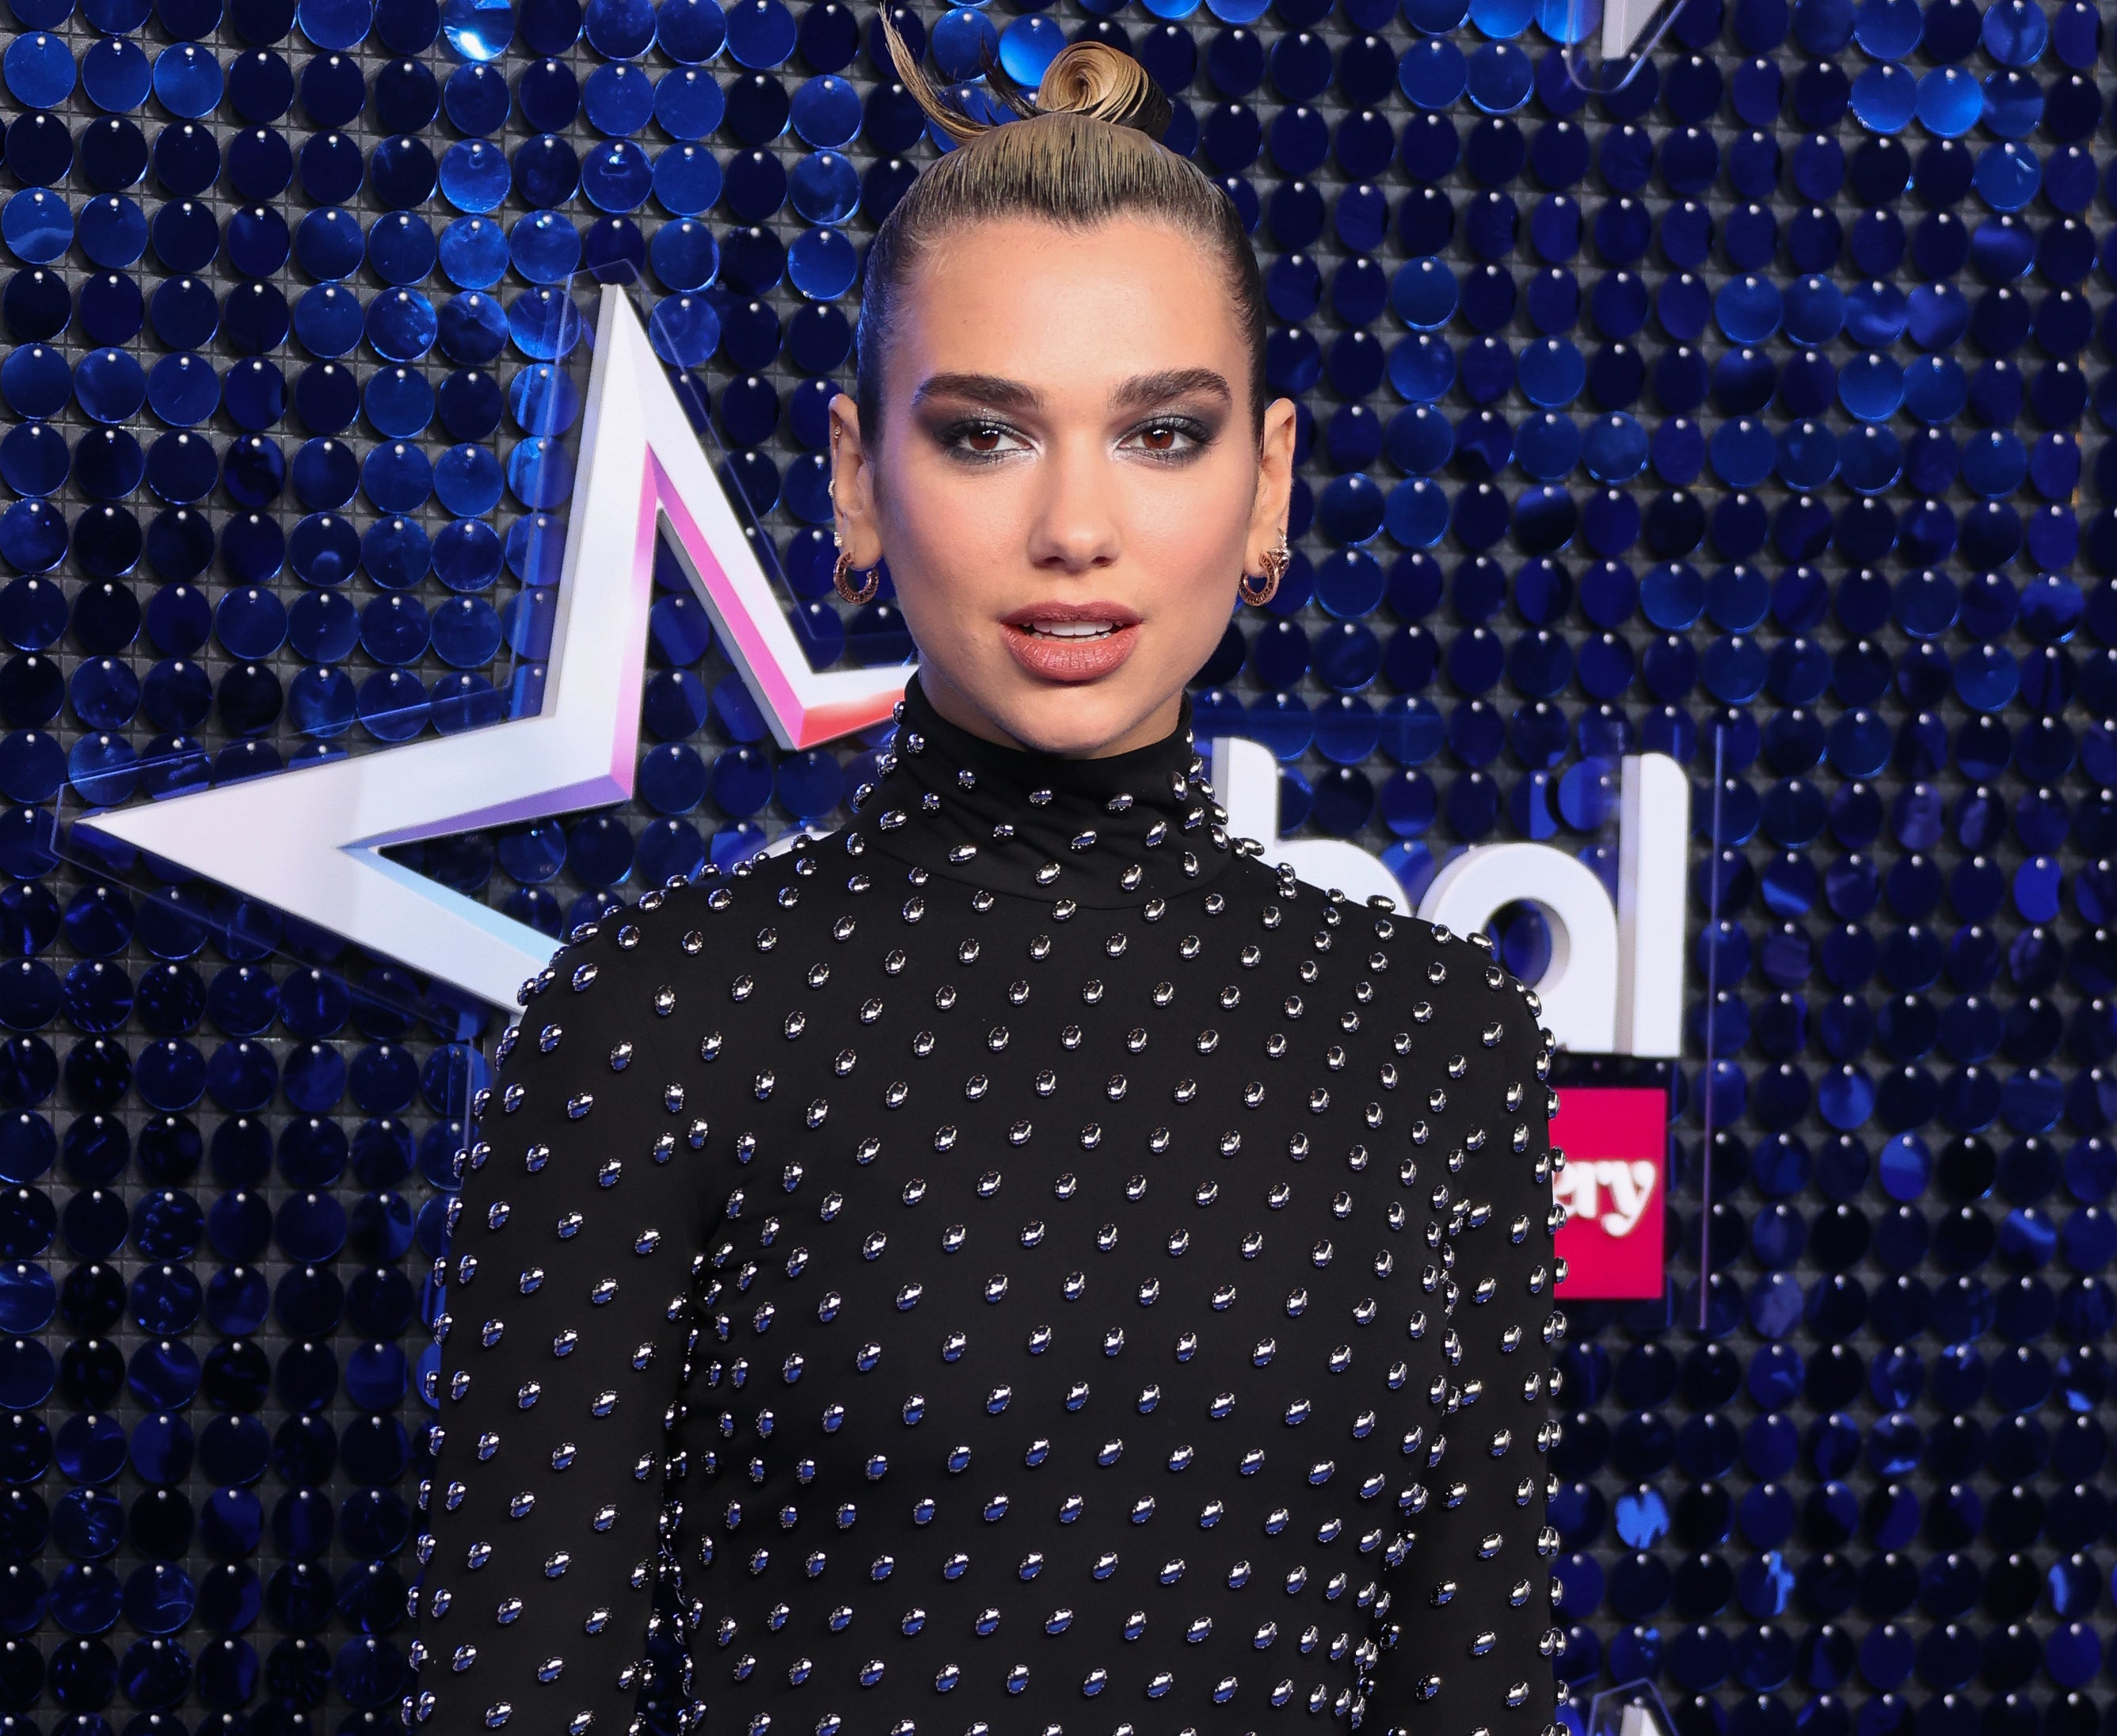 Dua looks serious in a black long-sleeve dress at an event